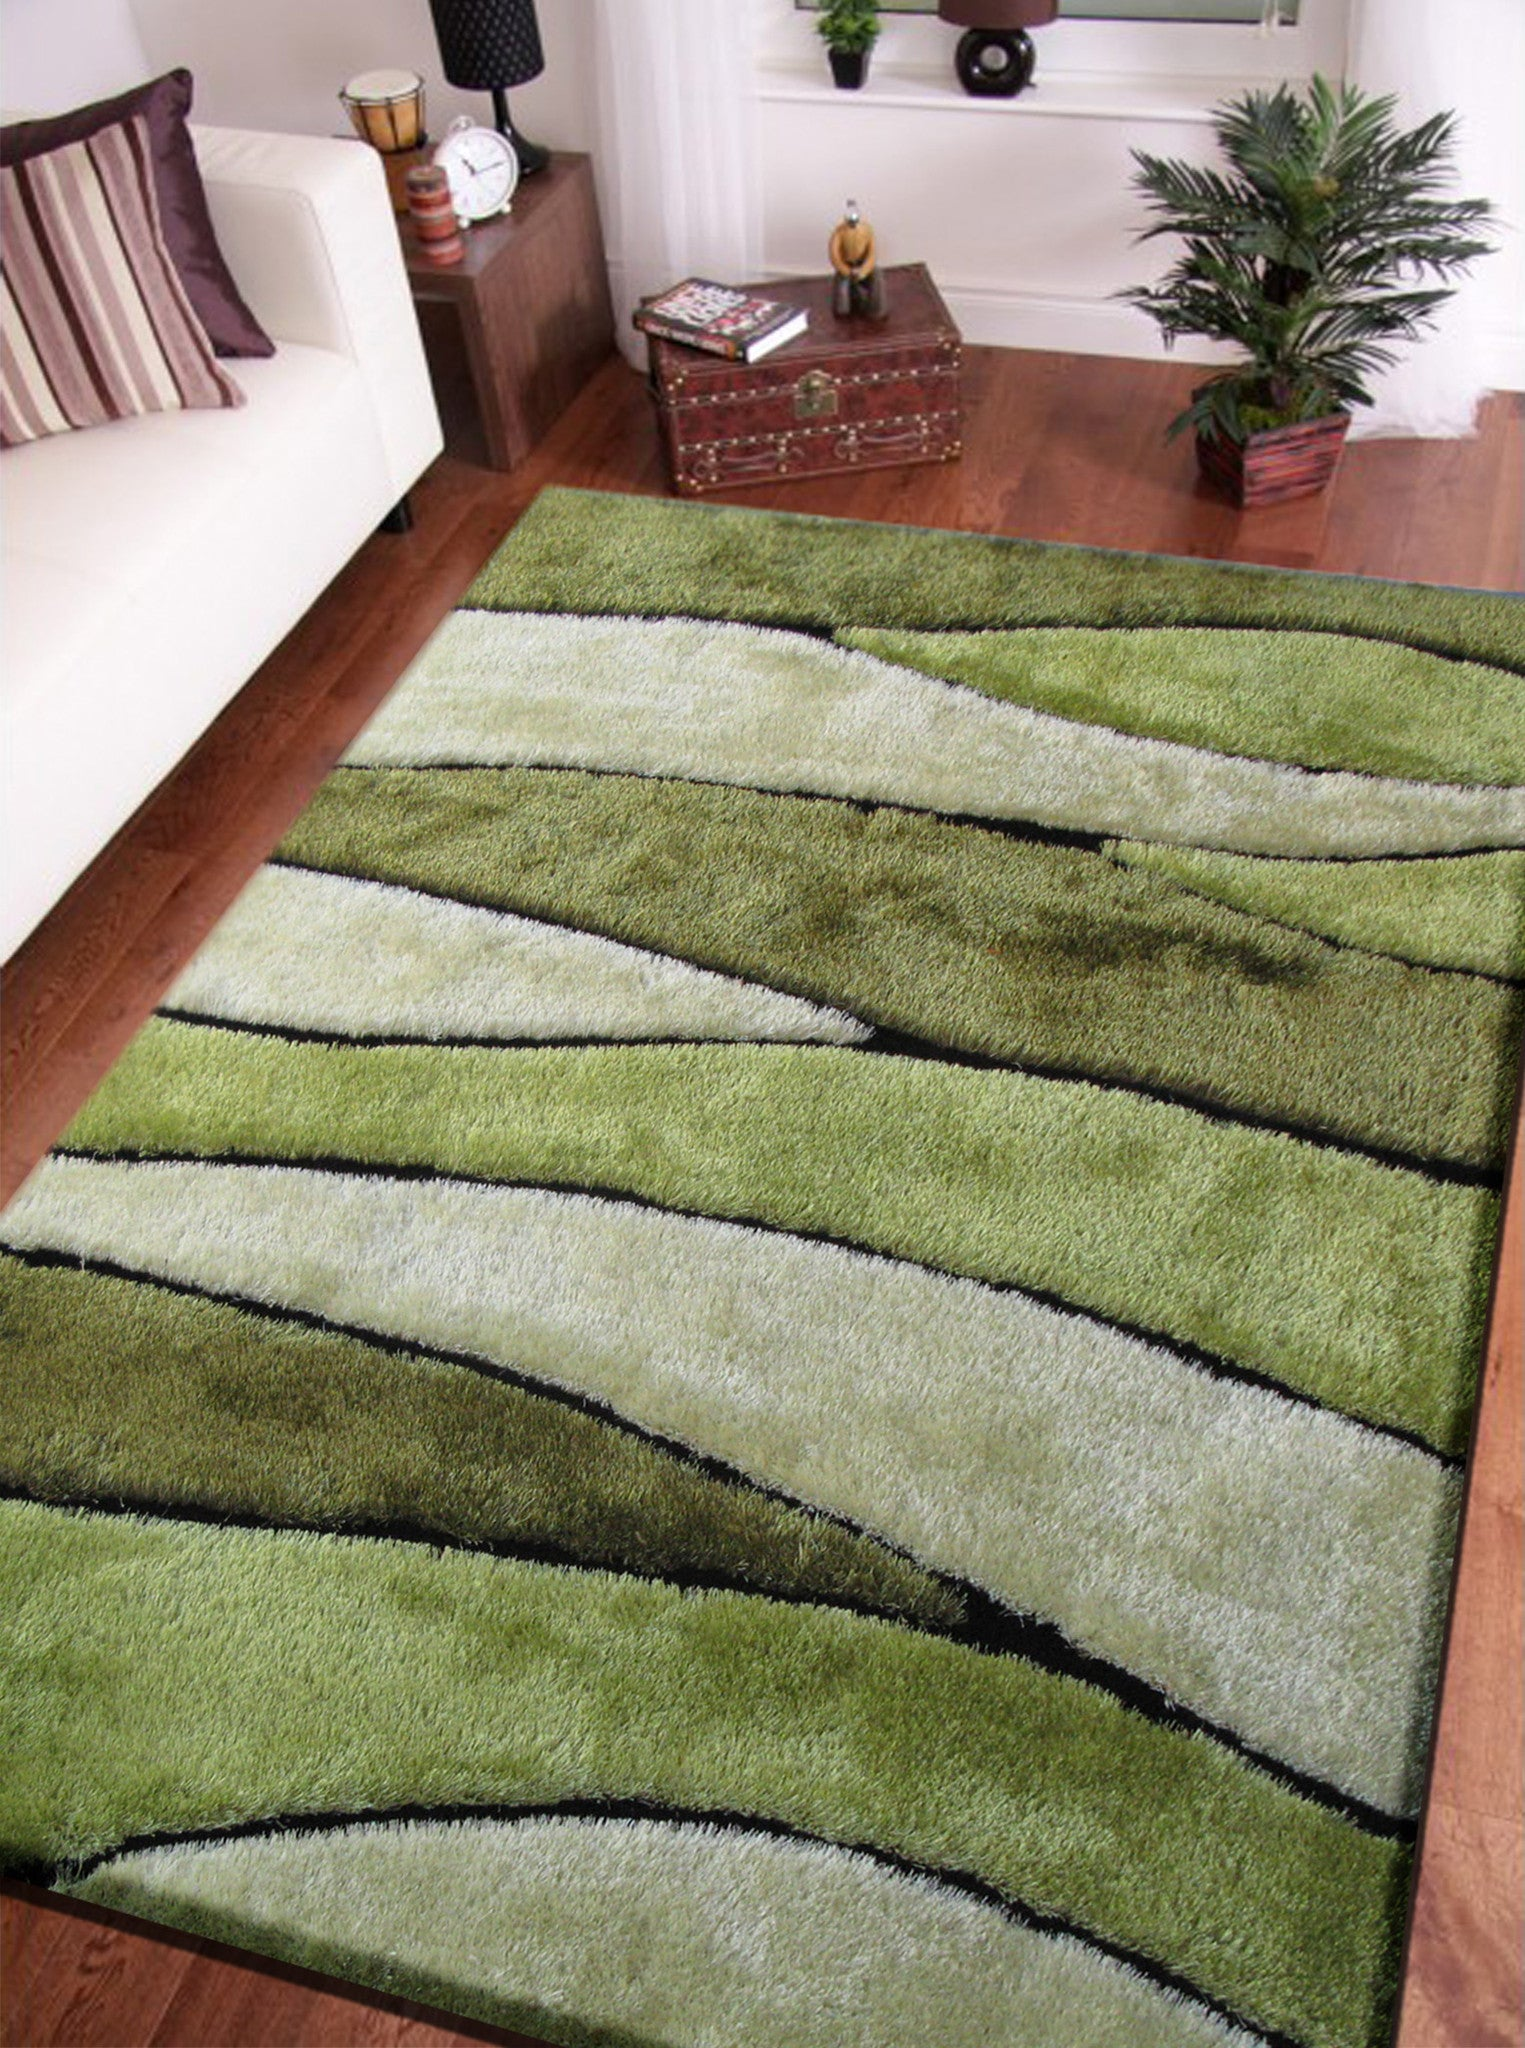 2 Piece Set | Handmade Vibrant Green Shag Area Rug With Hand Carved Design  With ...